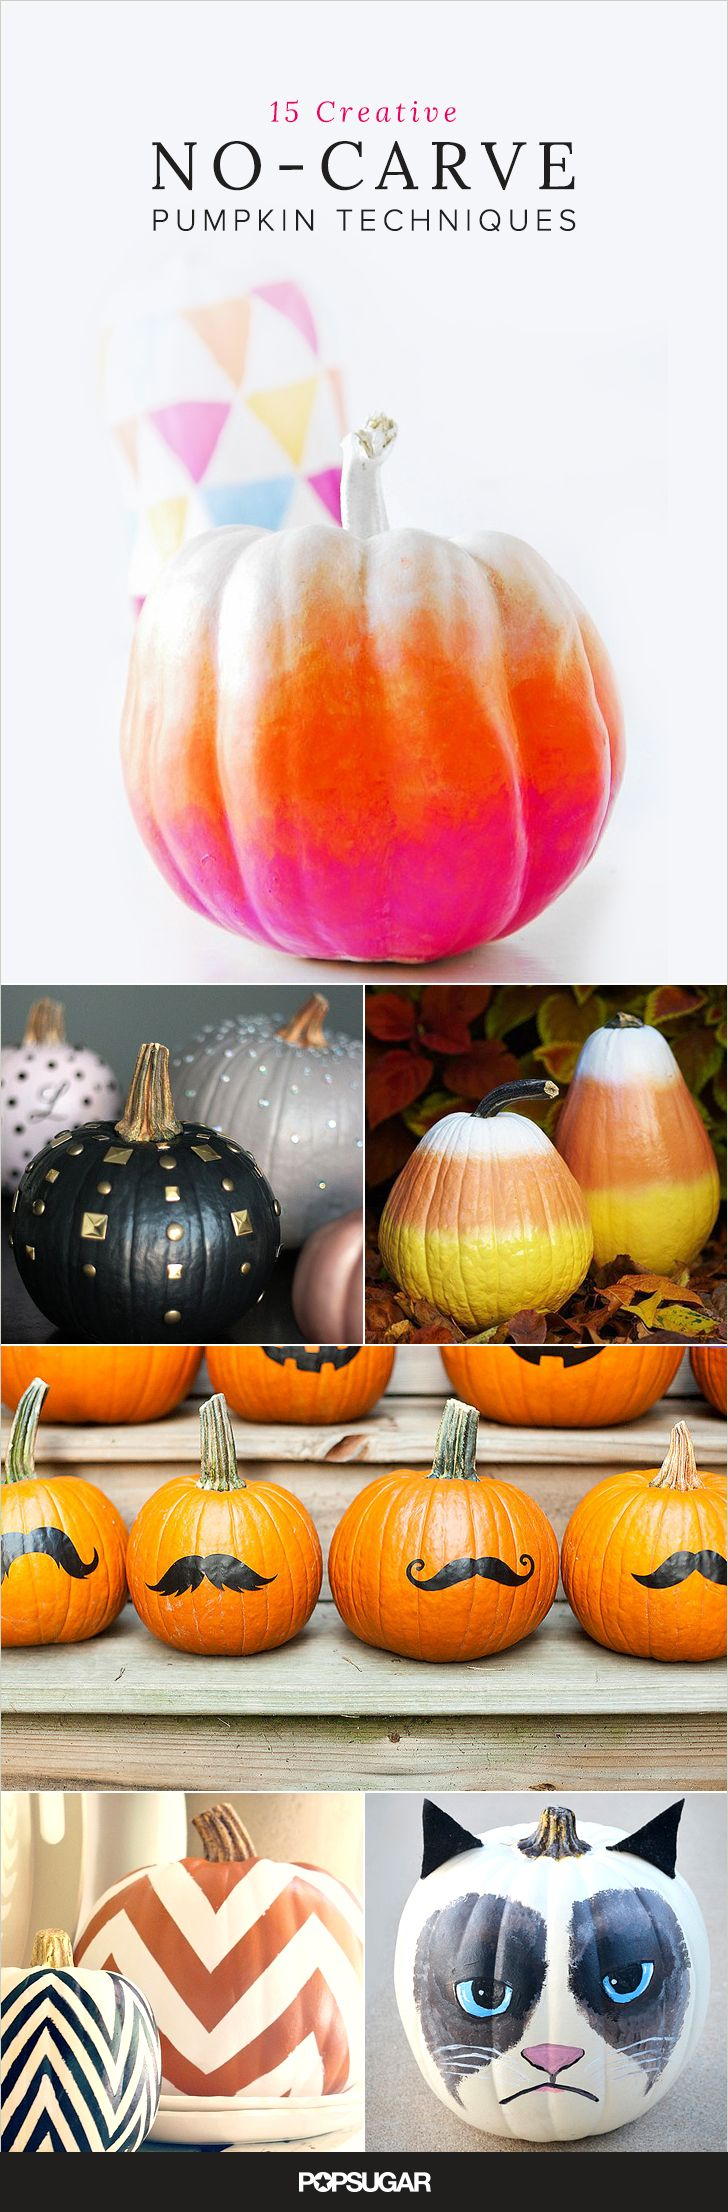 how to make pumpkin carving easier